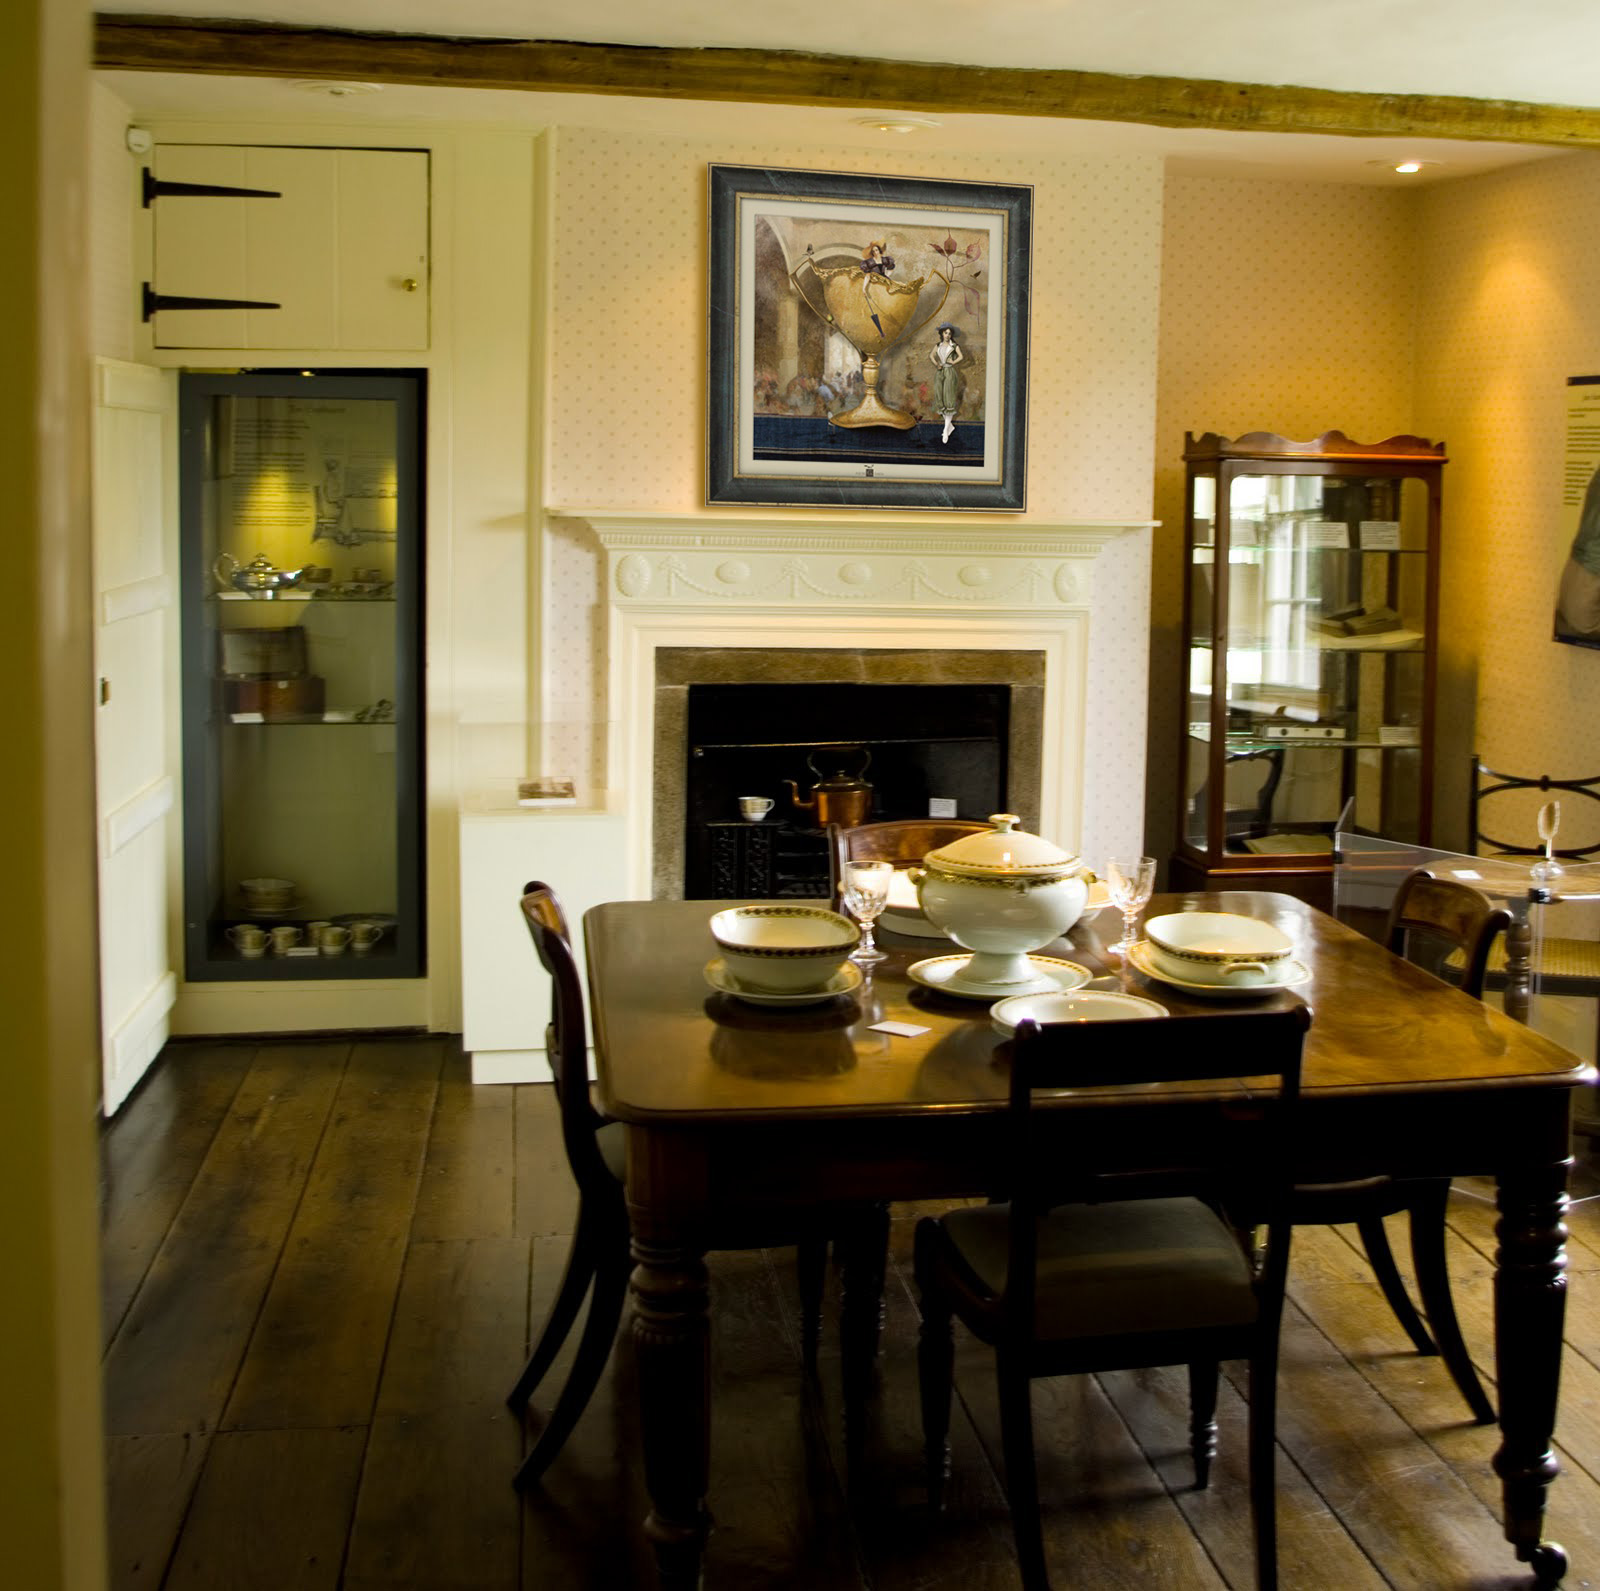 chawton-cottage-dining-room-2.jpg